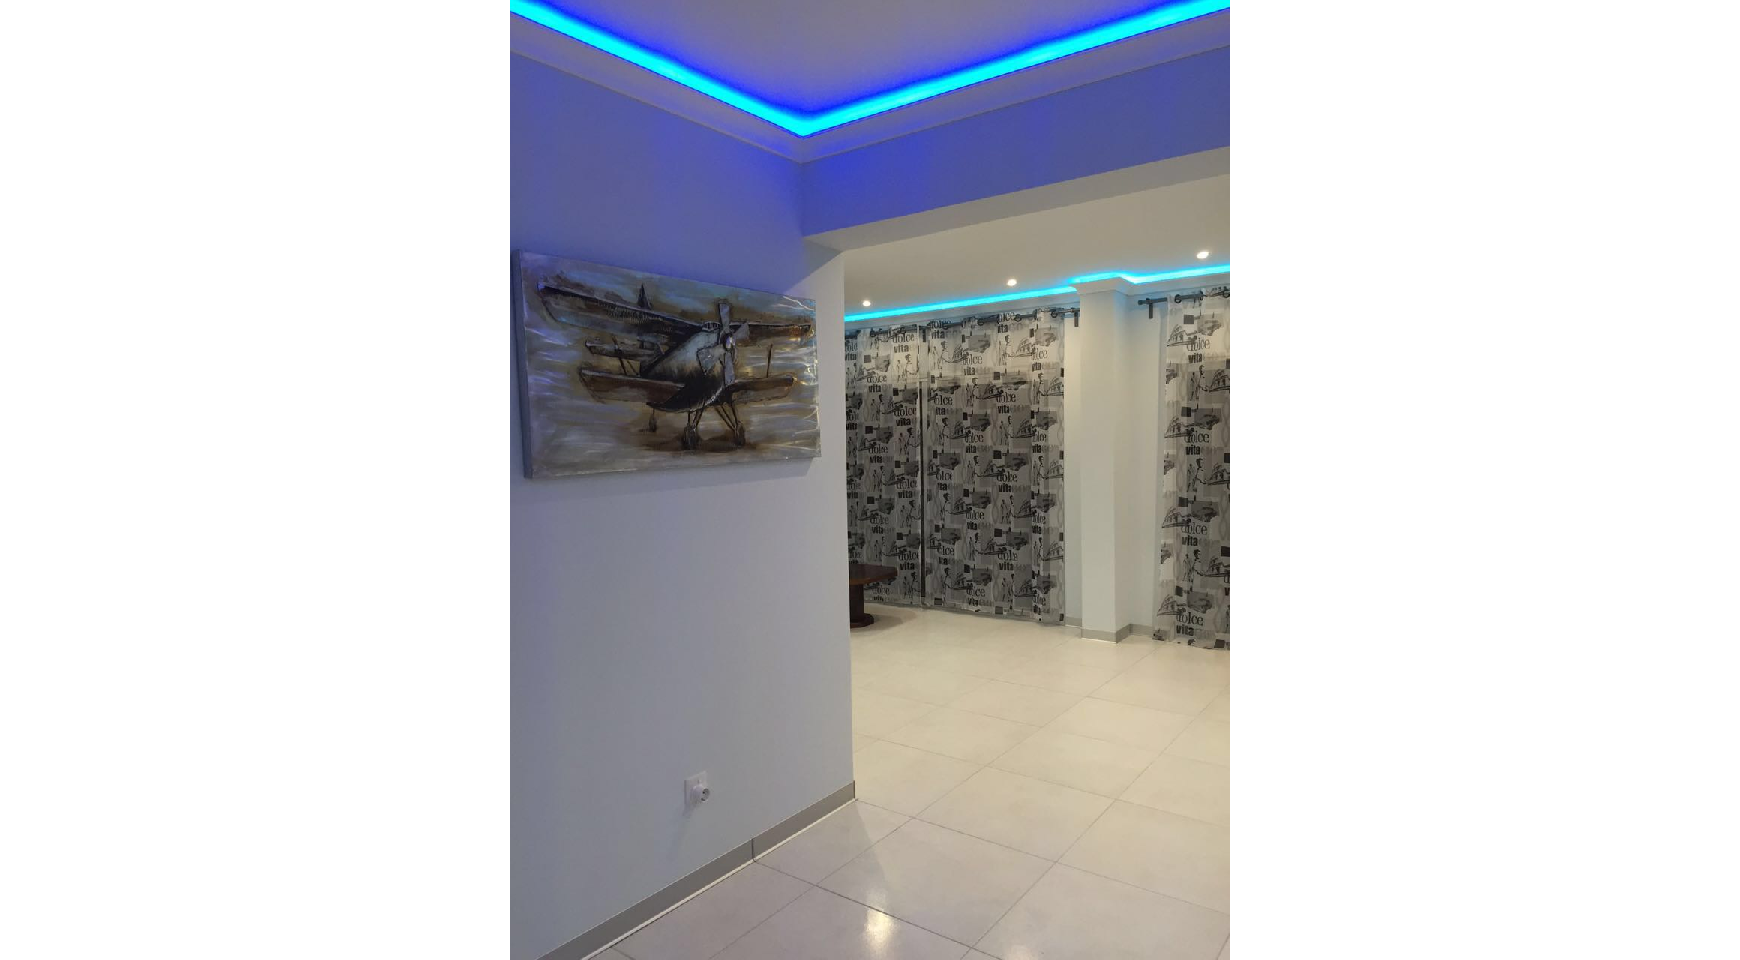 Fully Renovated 3 Bedroom Penthouse near the Sea - 5